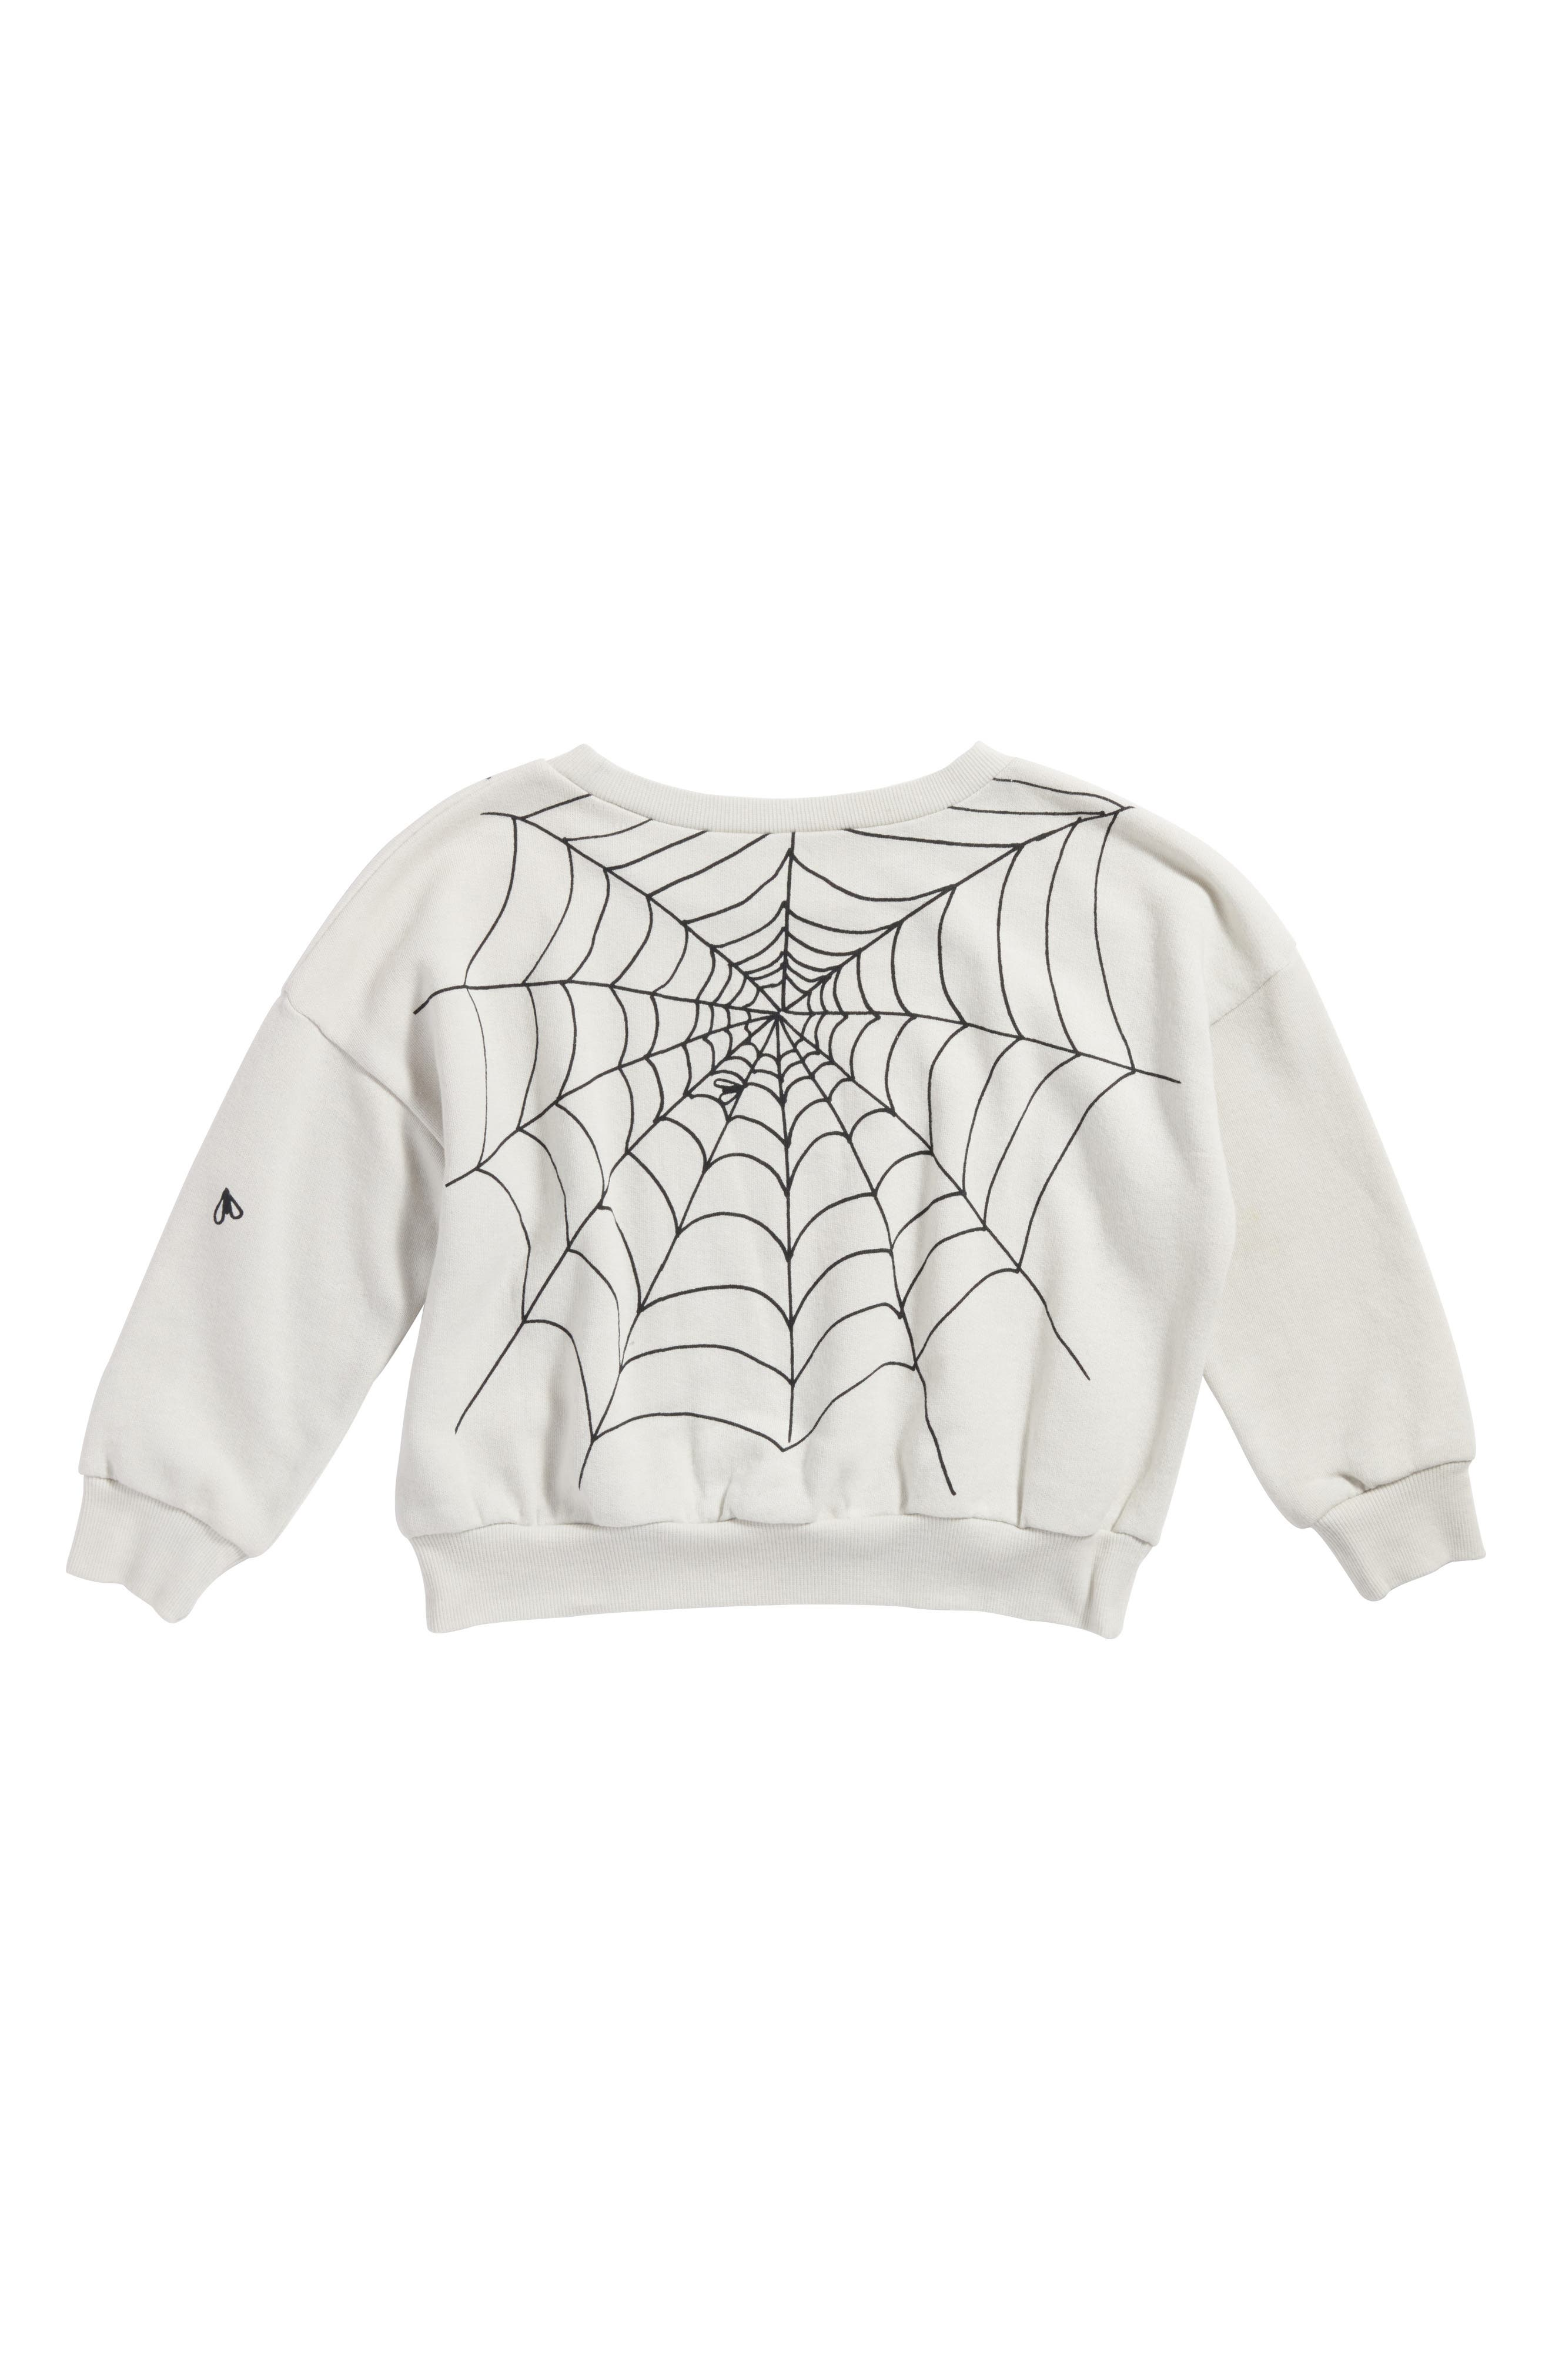 Graphic Sweatshirt,                             Alternate thumbnail 2, color,